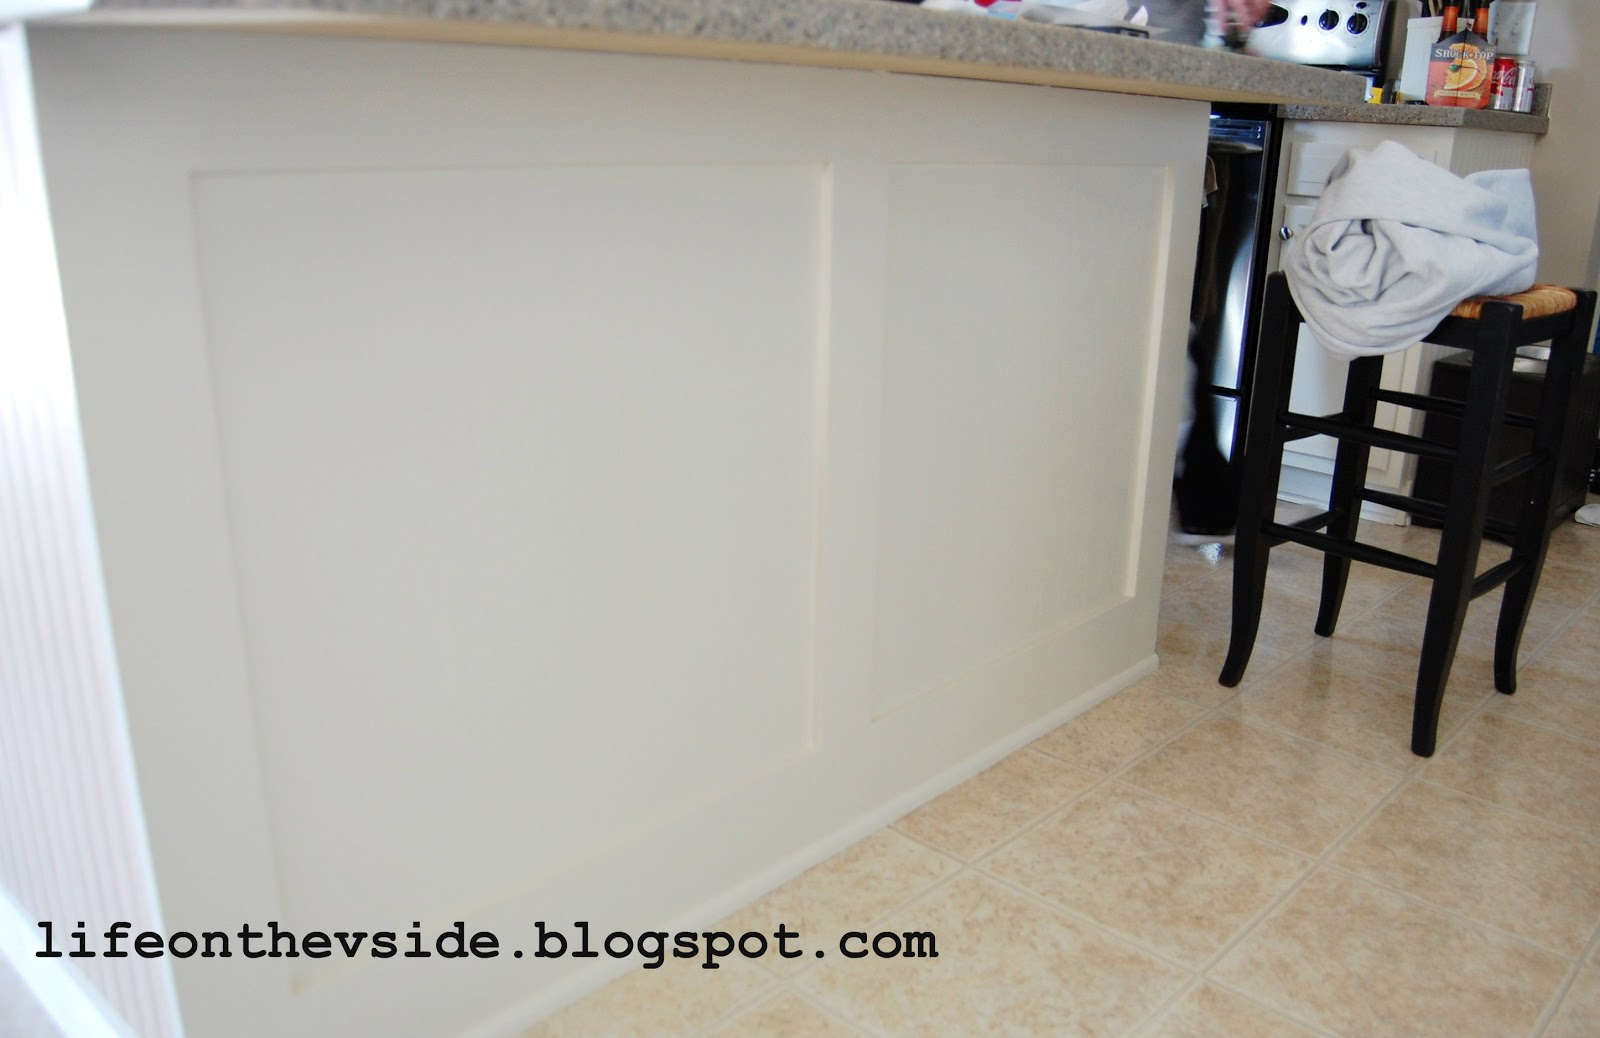 What Do You Use For Covering On Kitchen Island